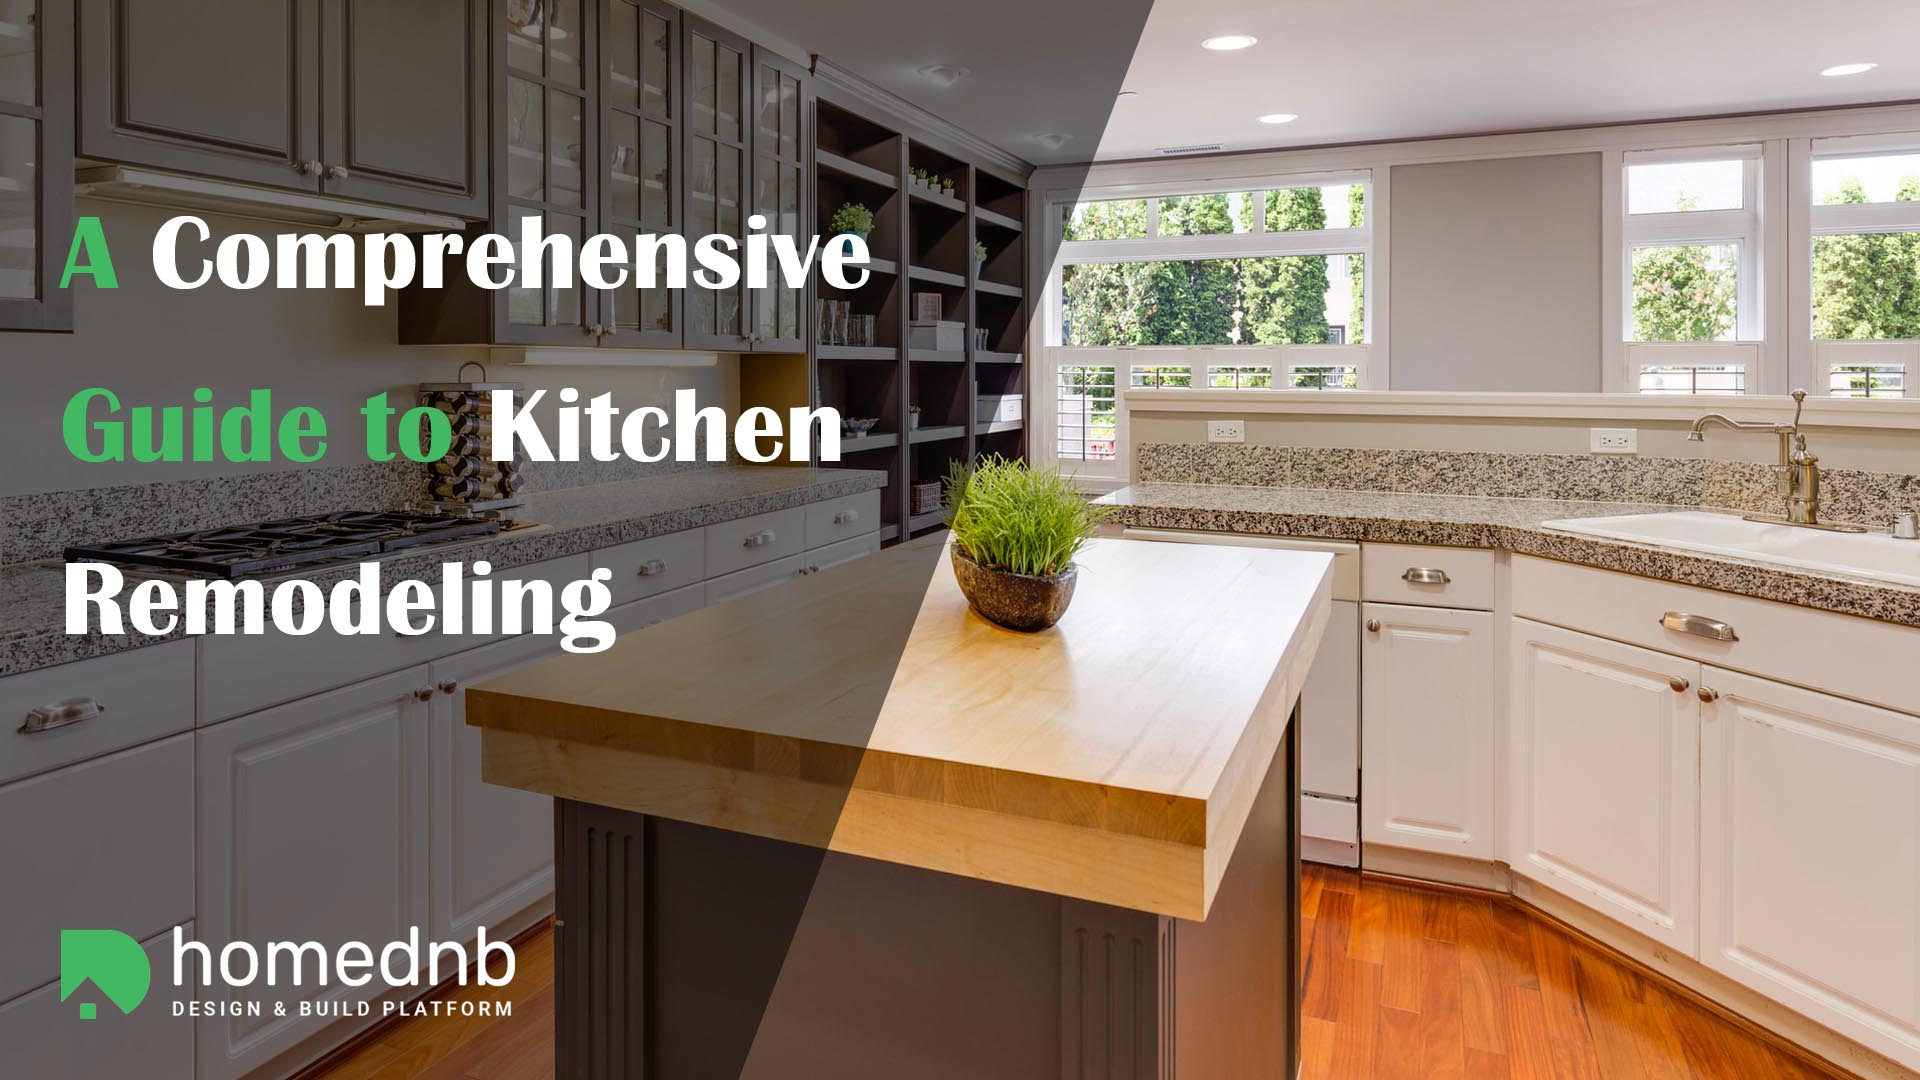 A Comprehensive Guide to Kitchen Remodeling